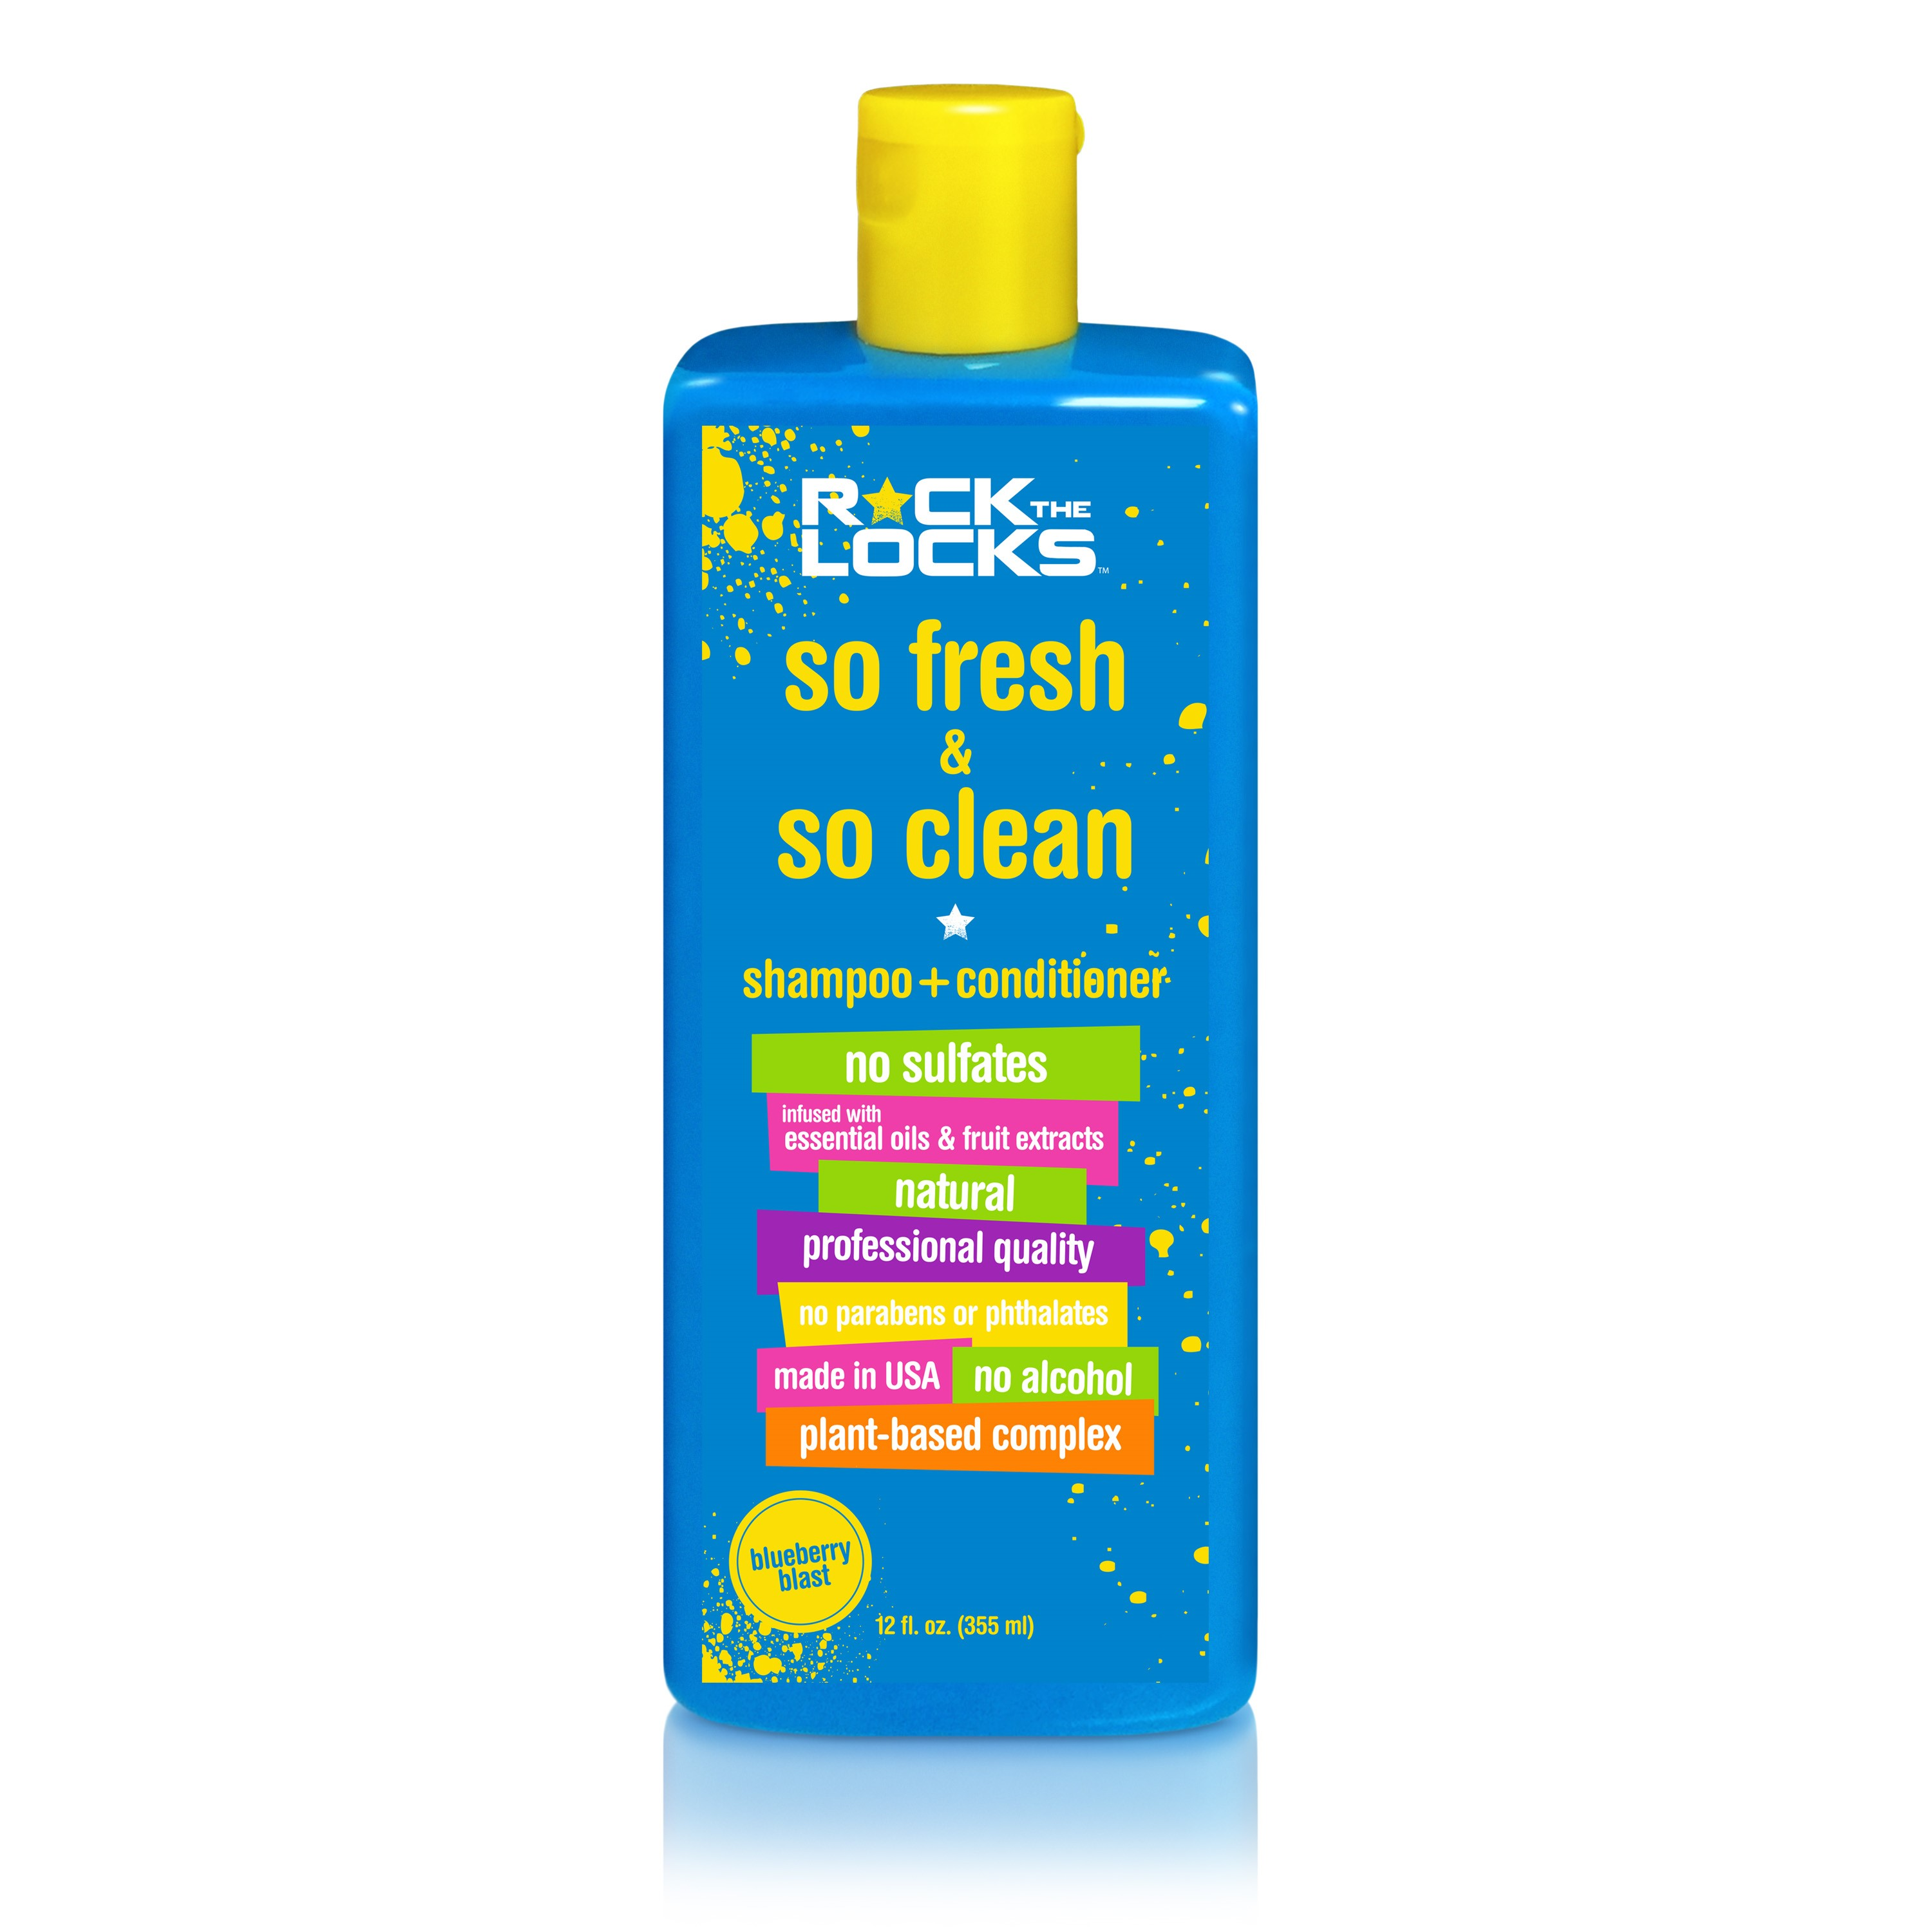 Rock the locks so fresh and so clean shampoo and conditioner blueberry blast, 12-oz bottle